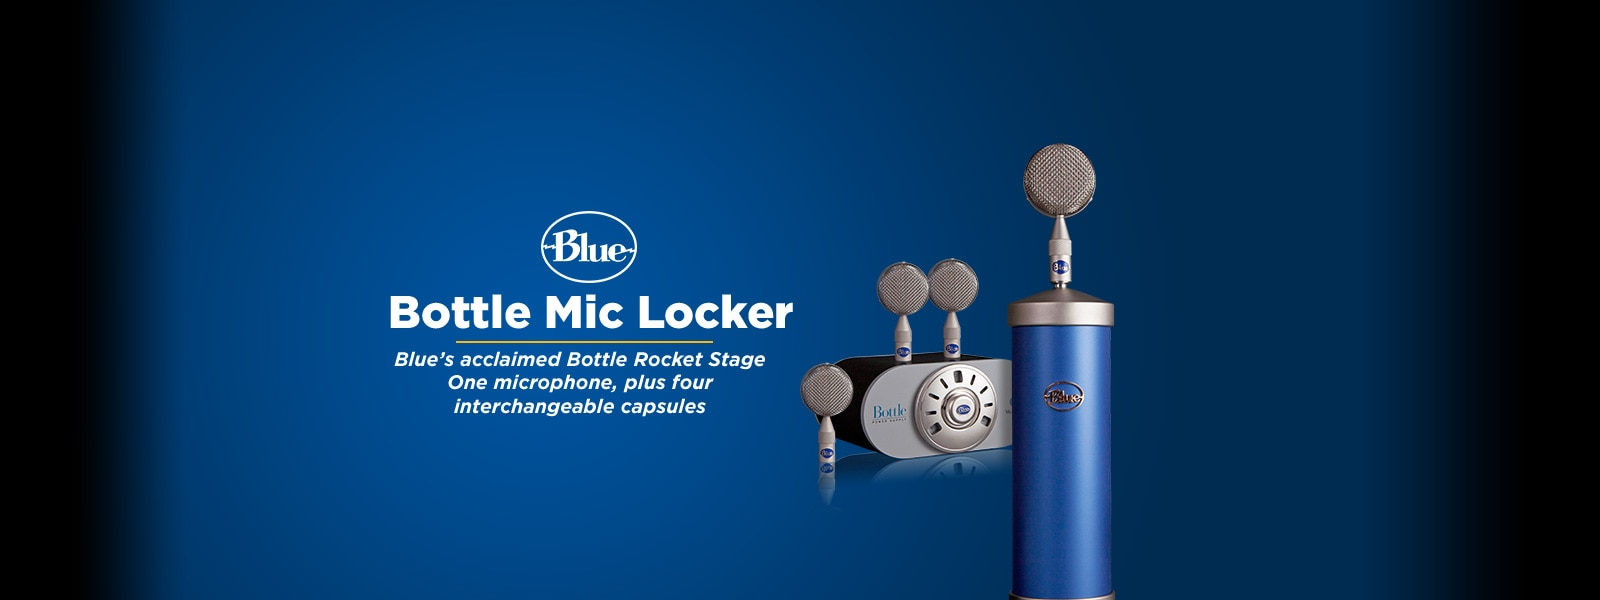 BLUE�Bottle Mic Locker